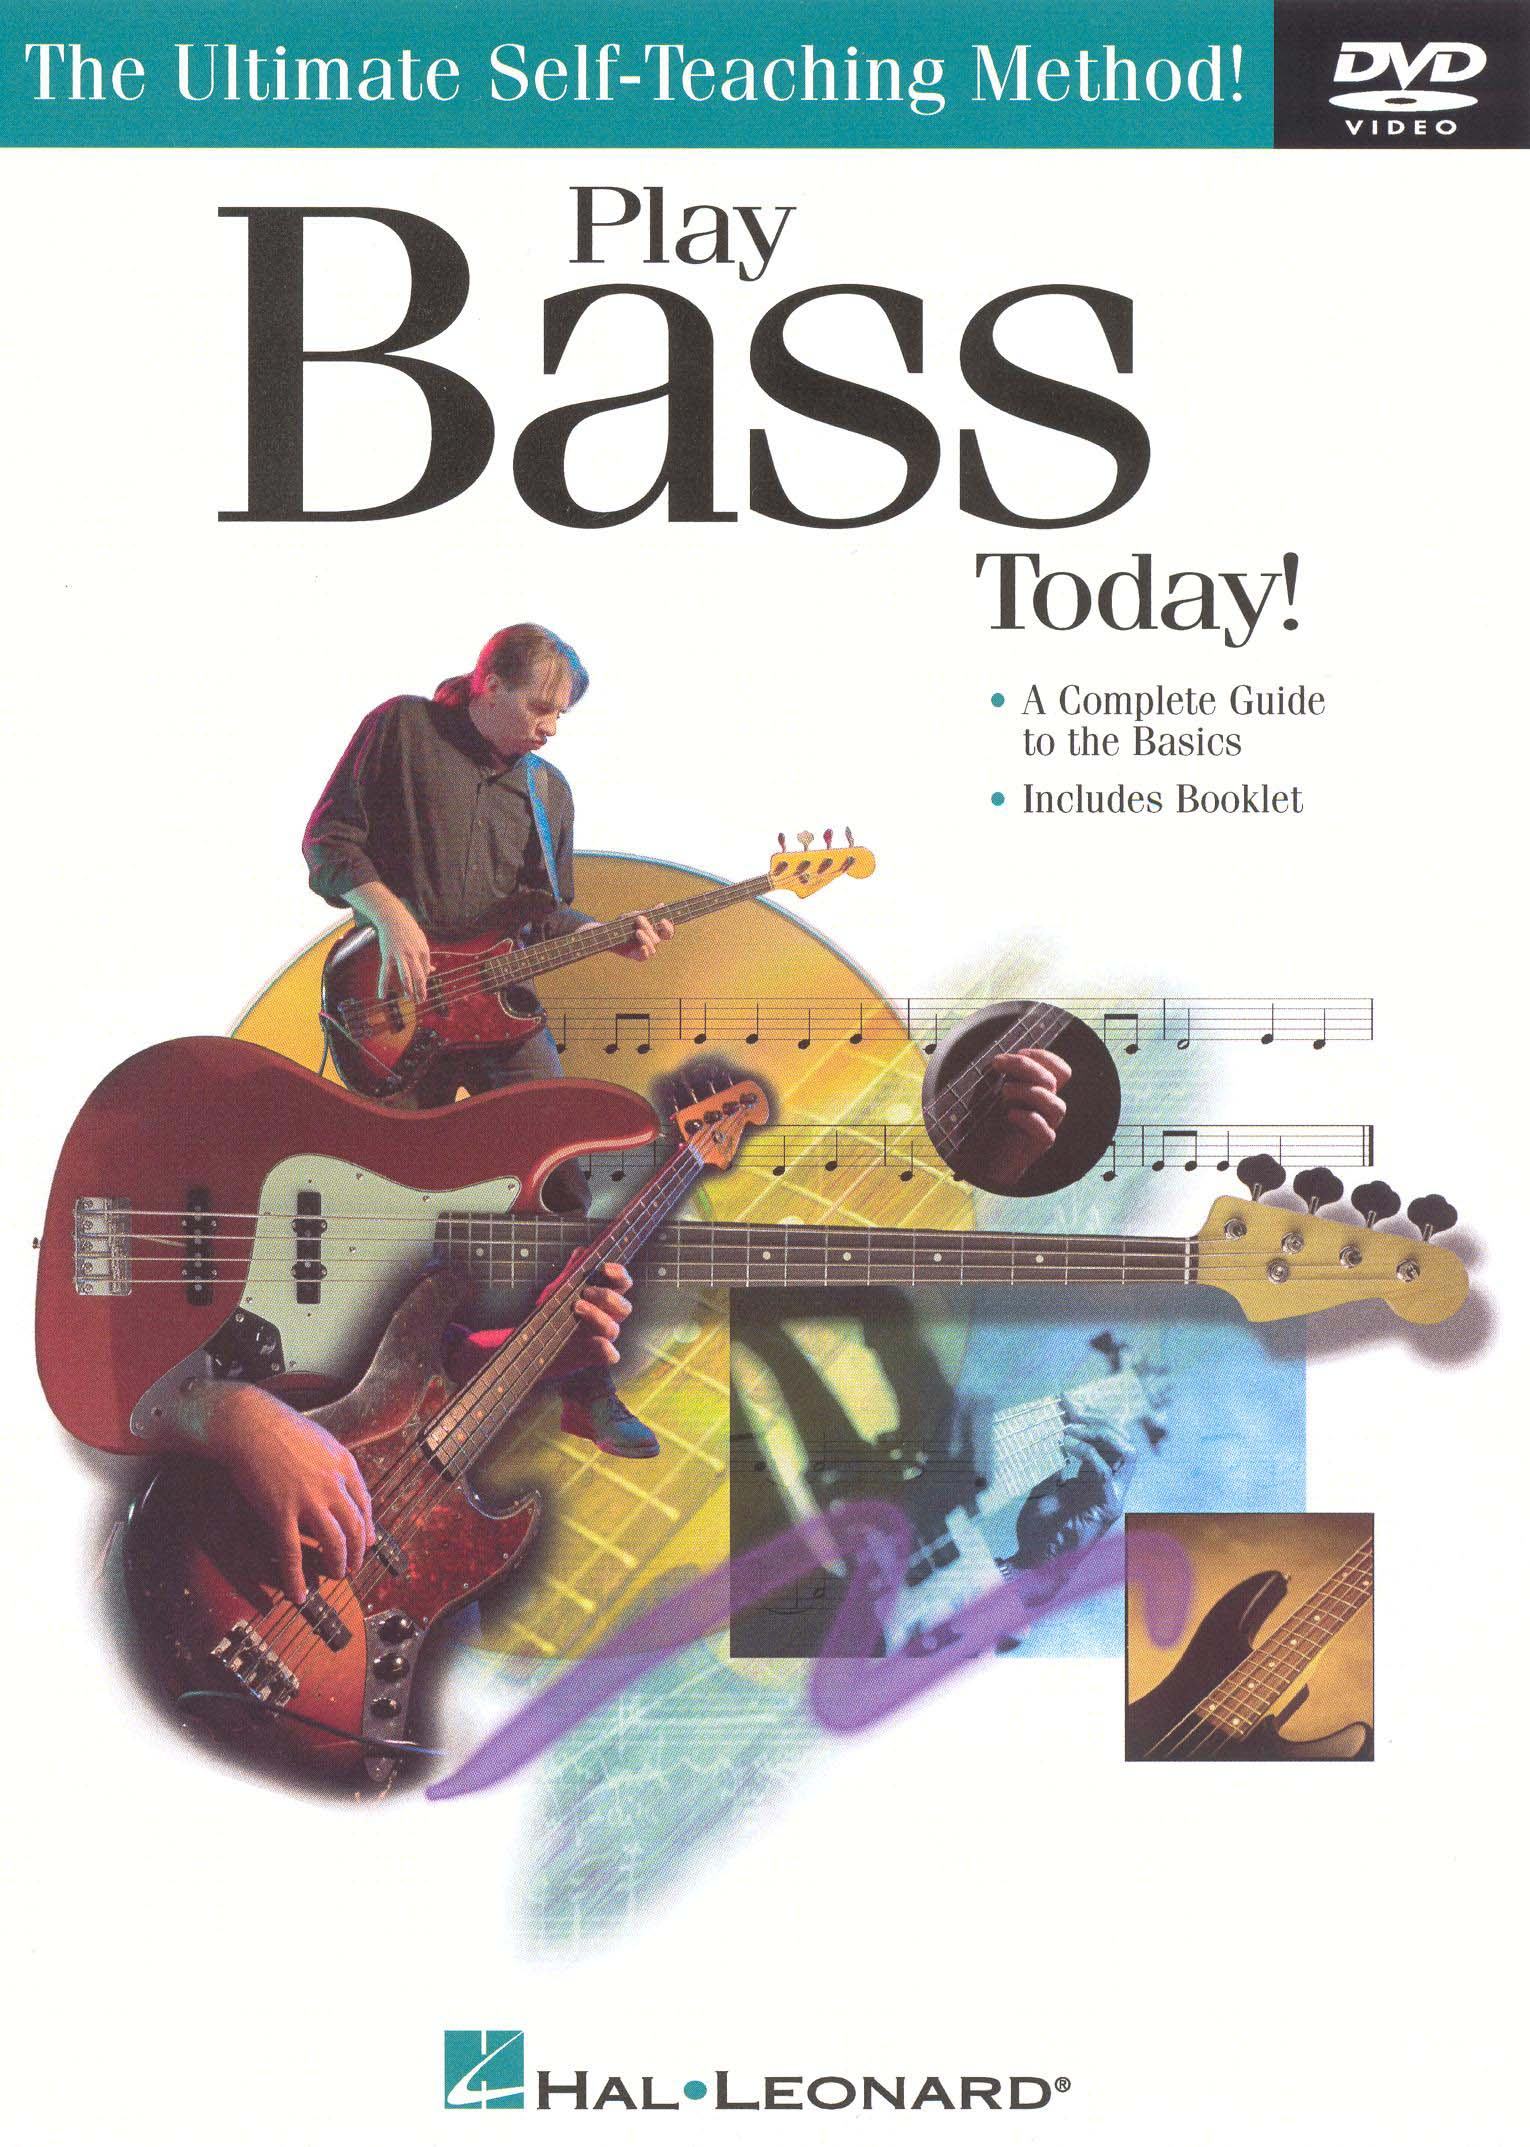 Play Bass Today!